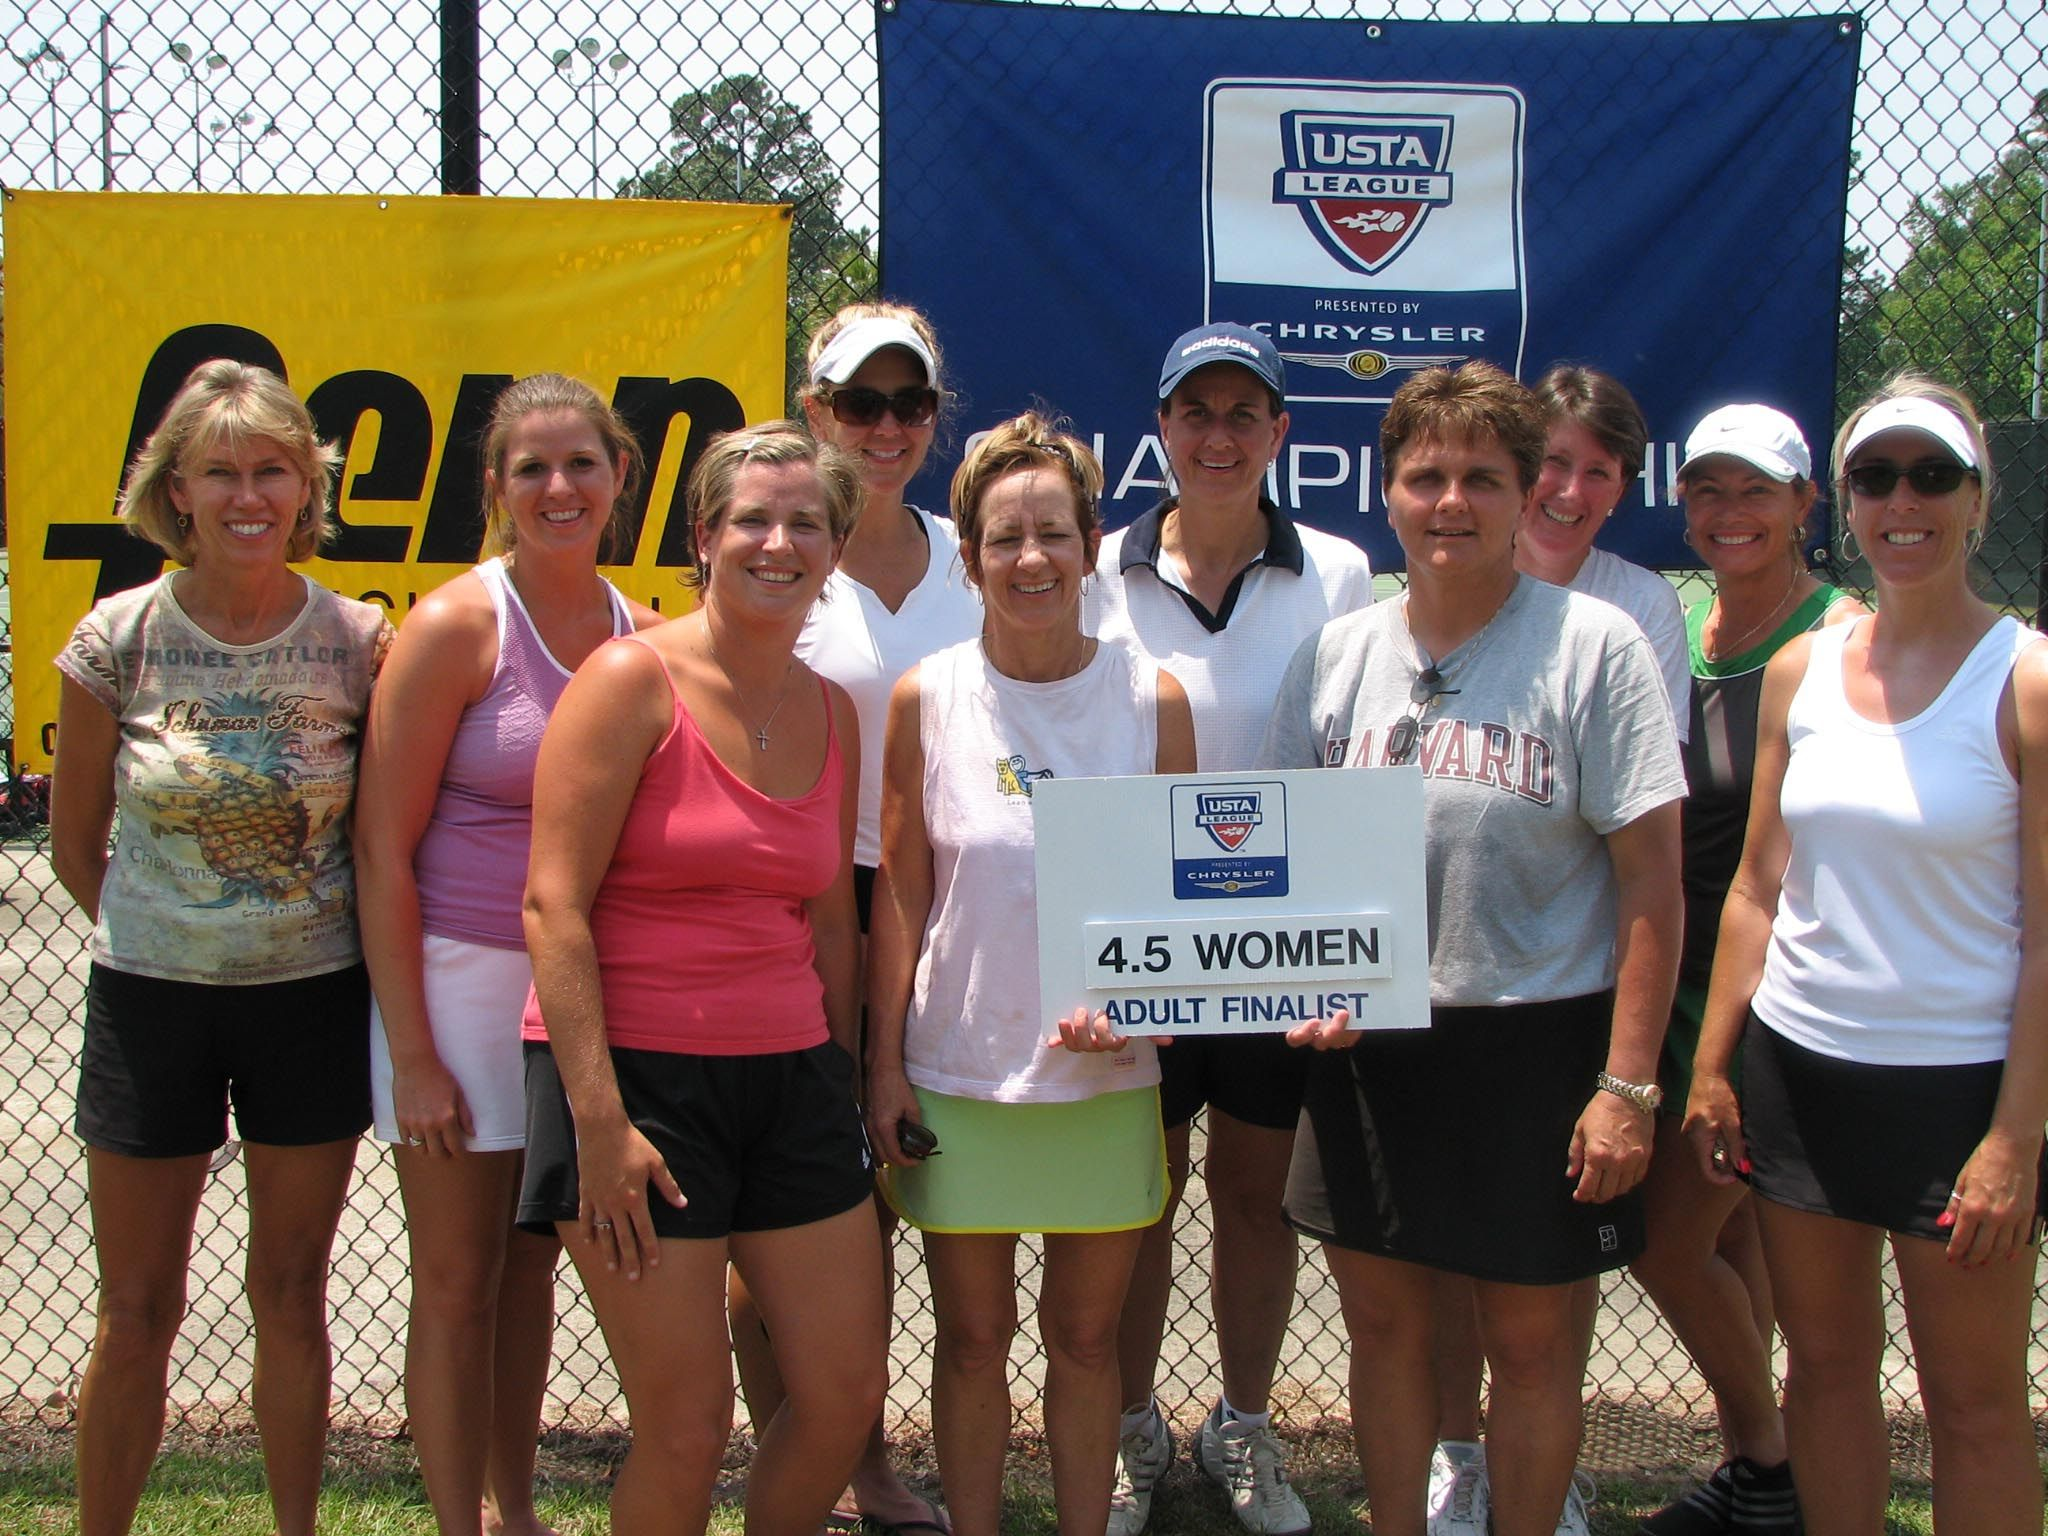 2007 4.5 Adult Women Finalist